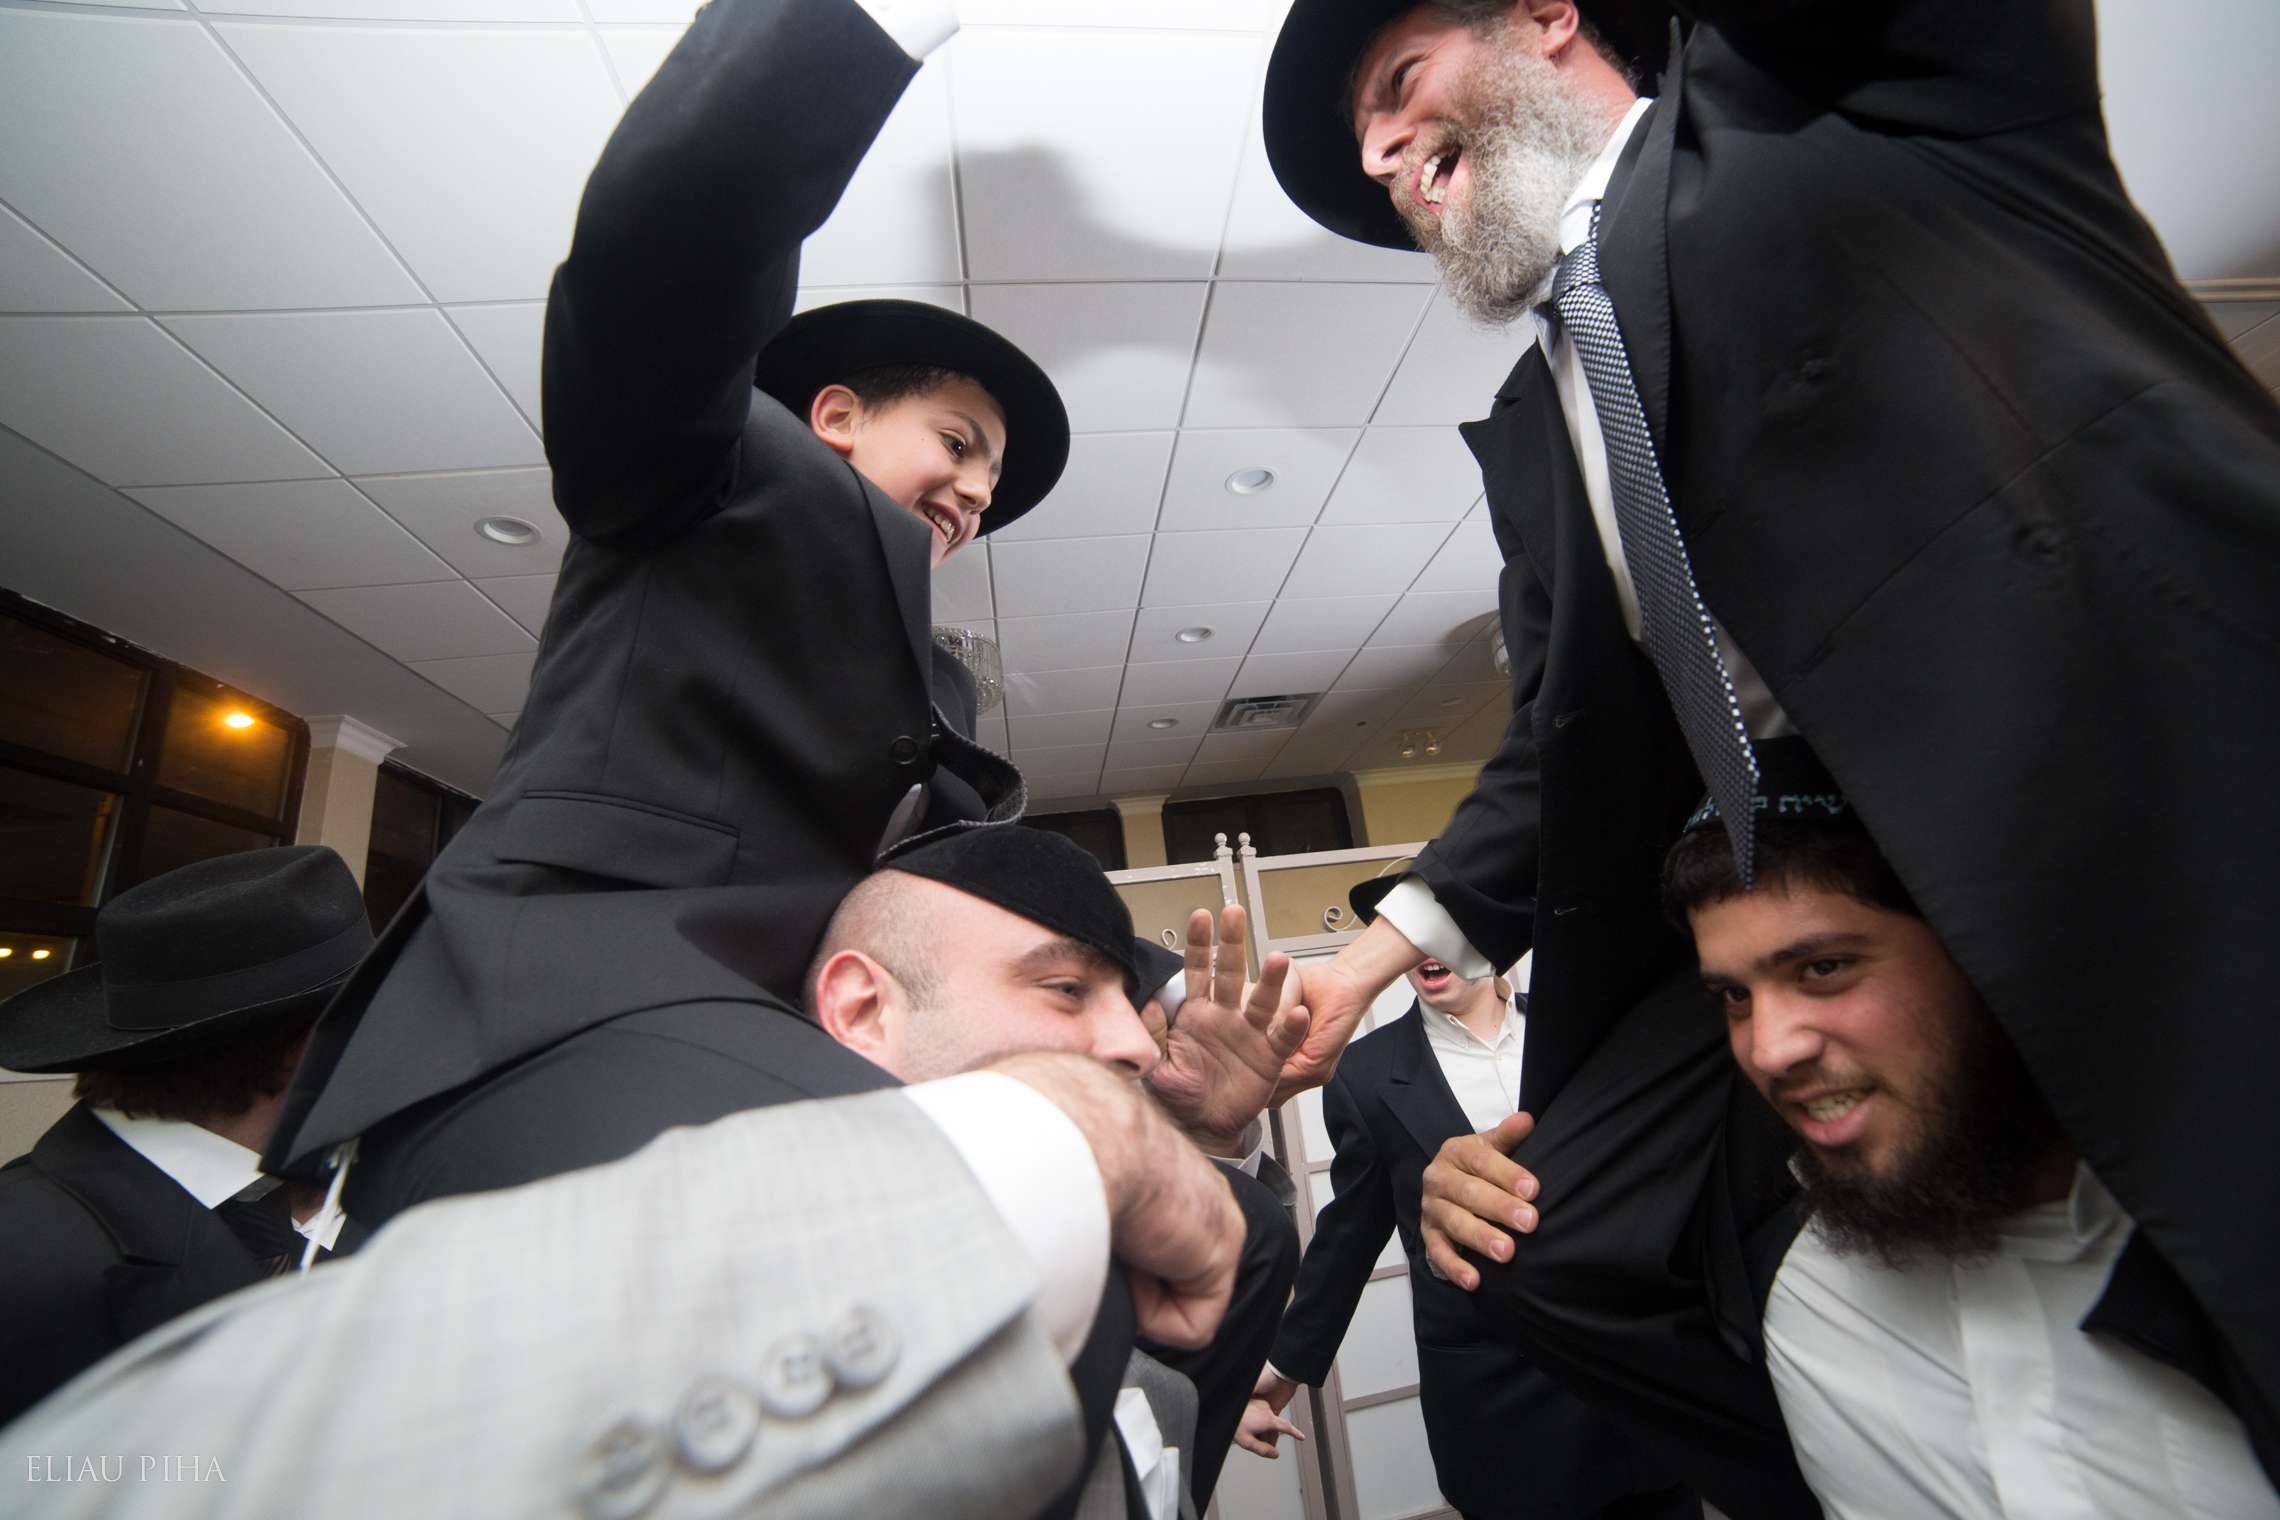 Bar-Mitzvah Levi Meer | Piha studio photography, new york, events, -7.jpg-02.jpg-06.jpg